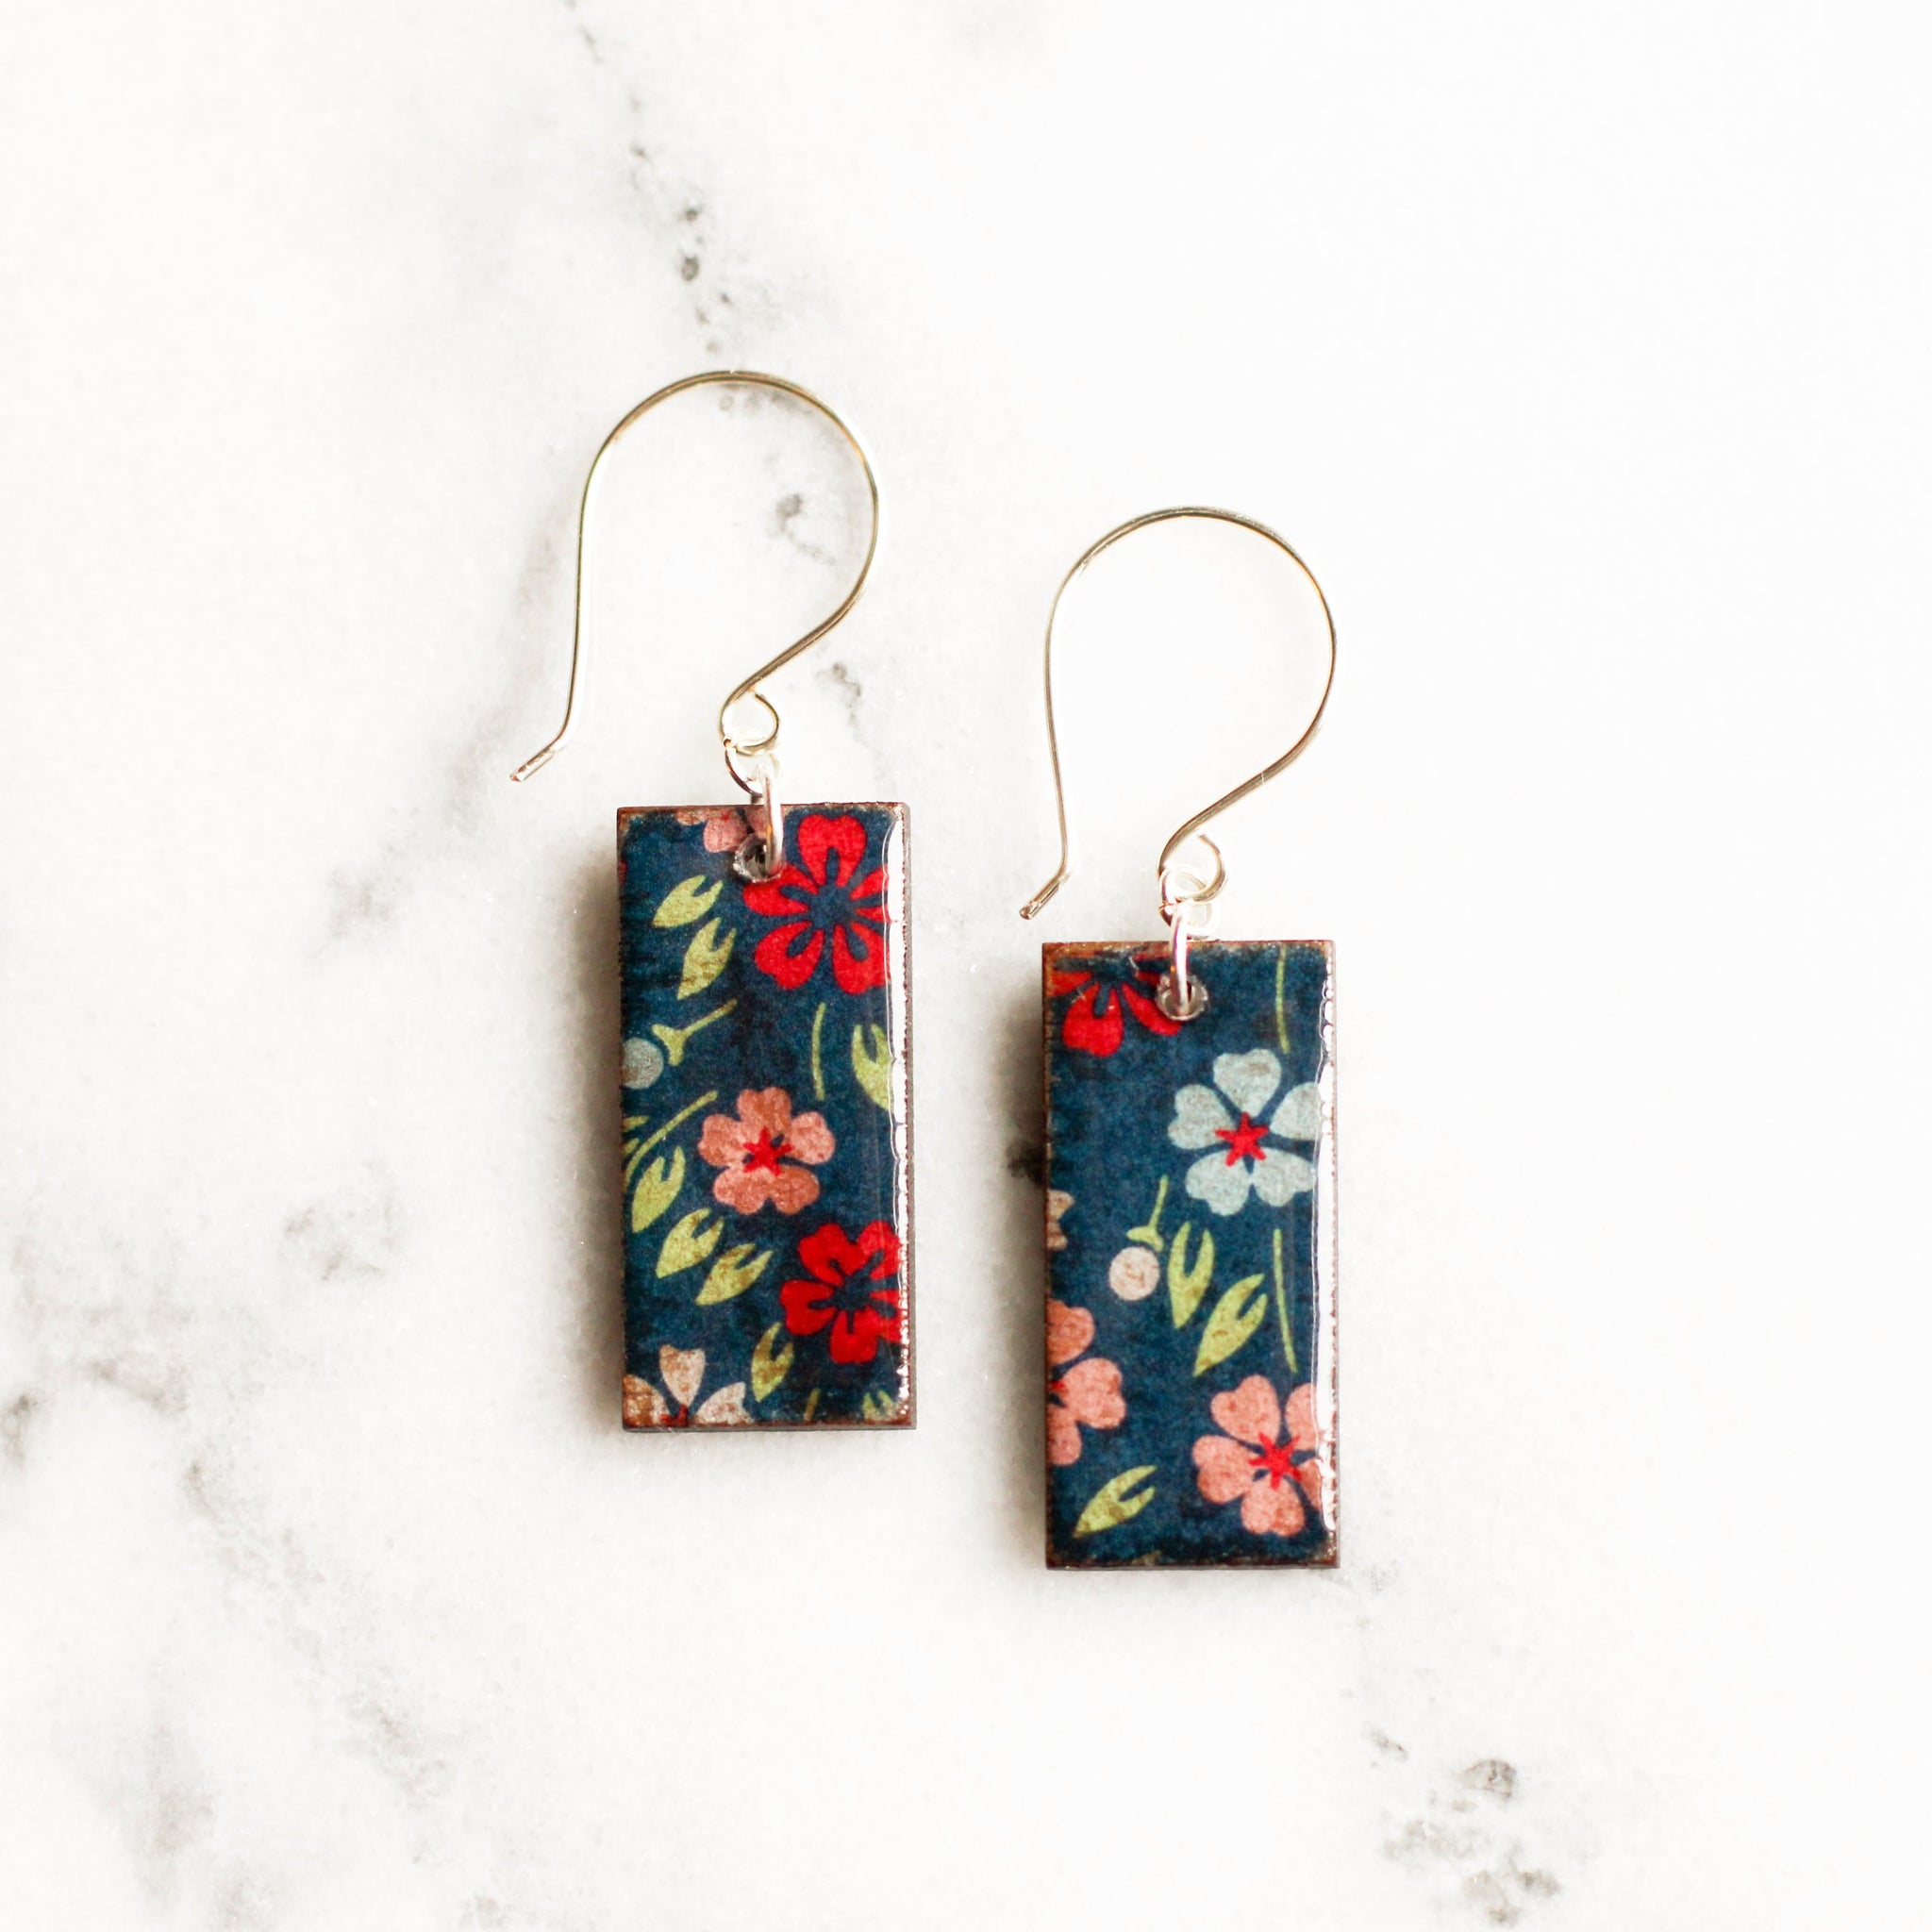 Navy Floral Japanese Paper and Wood Earrings - No Man's Land Artifacts